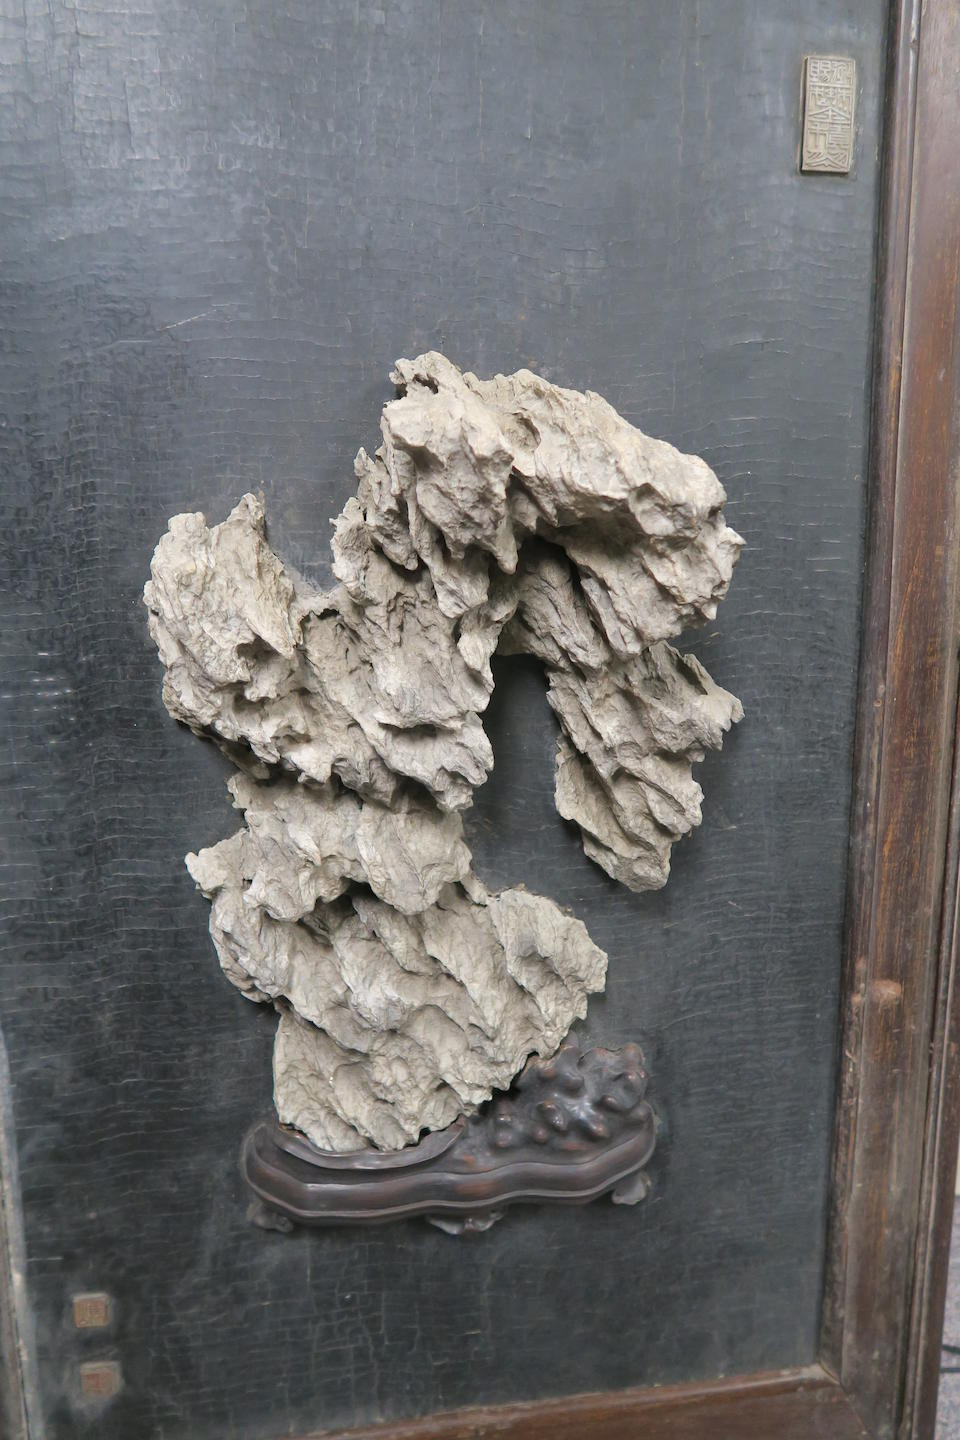 A scholar's rock mounted within a hanging panel